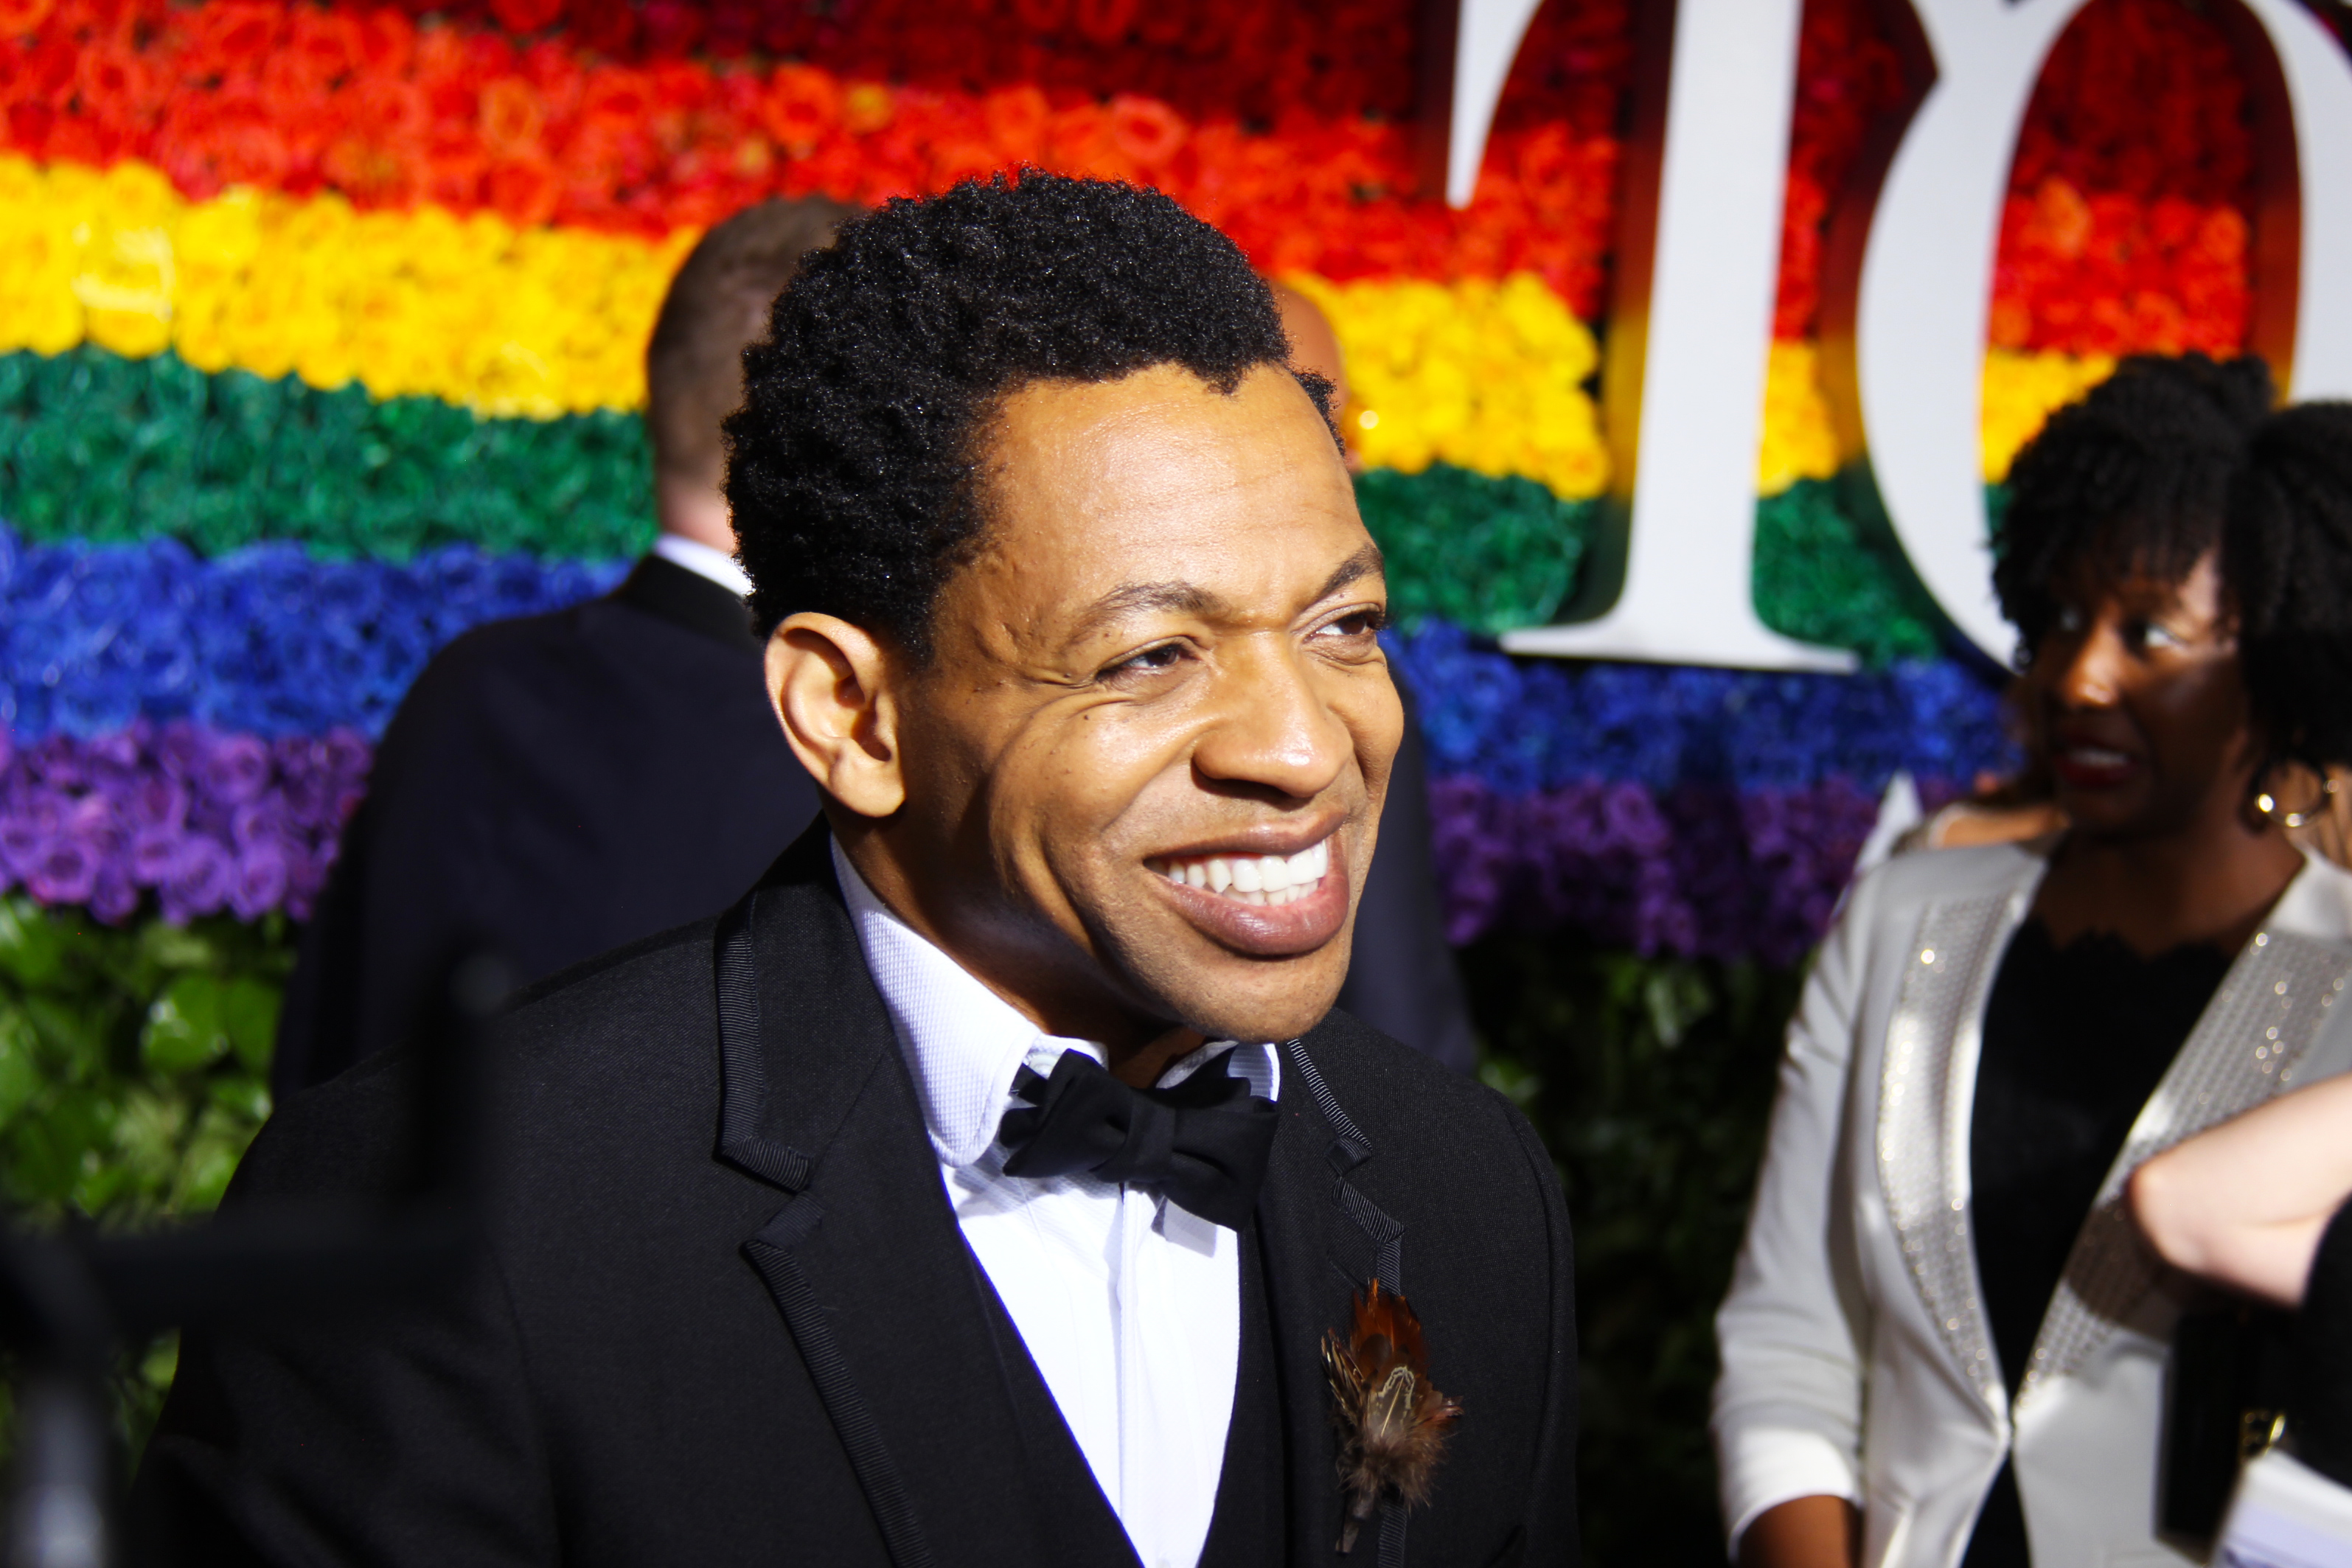 Derrick Baskin from <i>Ain't Too Proud - The Life and Times of the Temptations</i> on the Tony Awards red carpet. Photo by Broadway Direct.